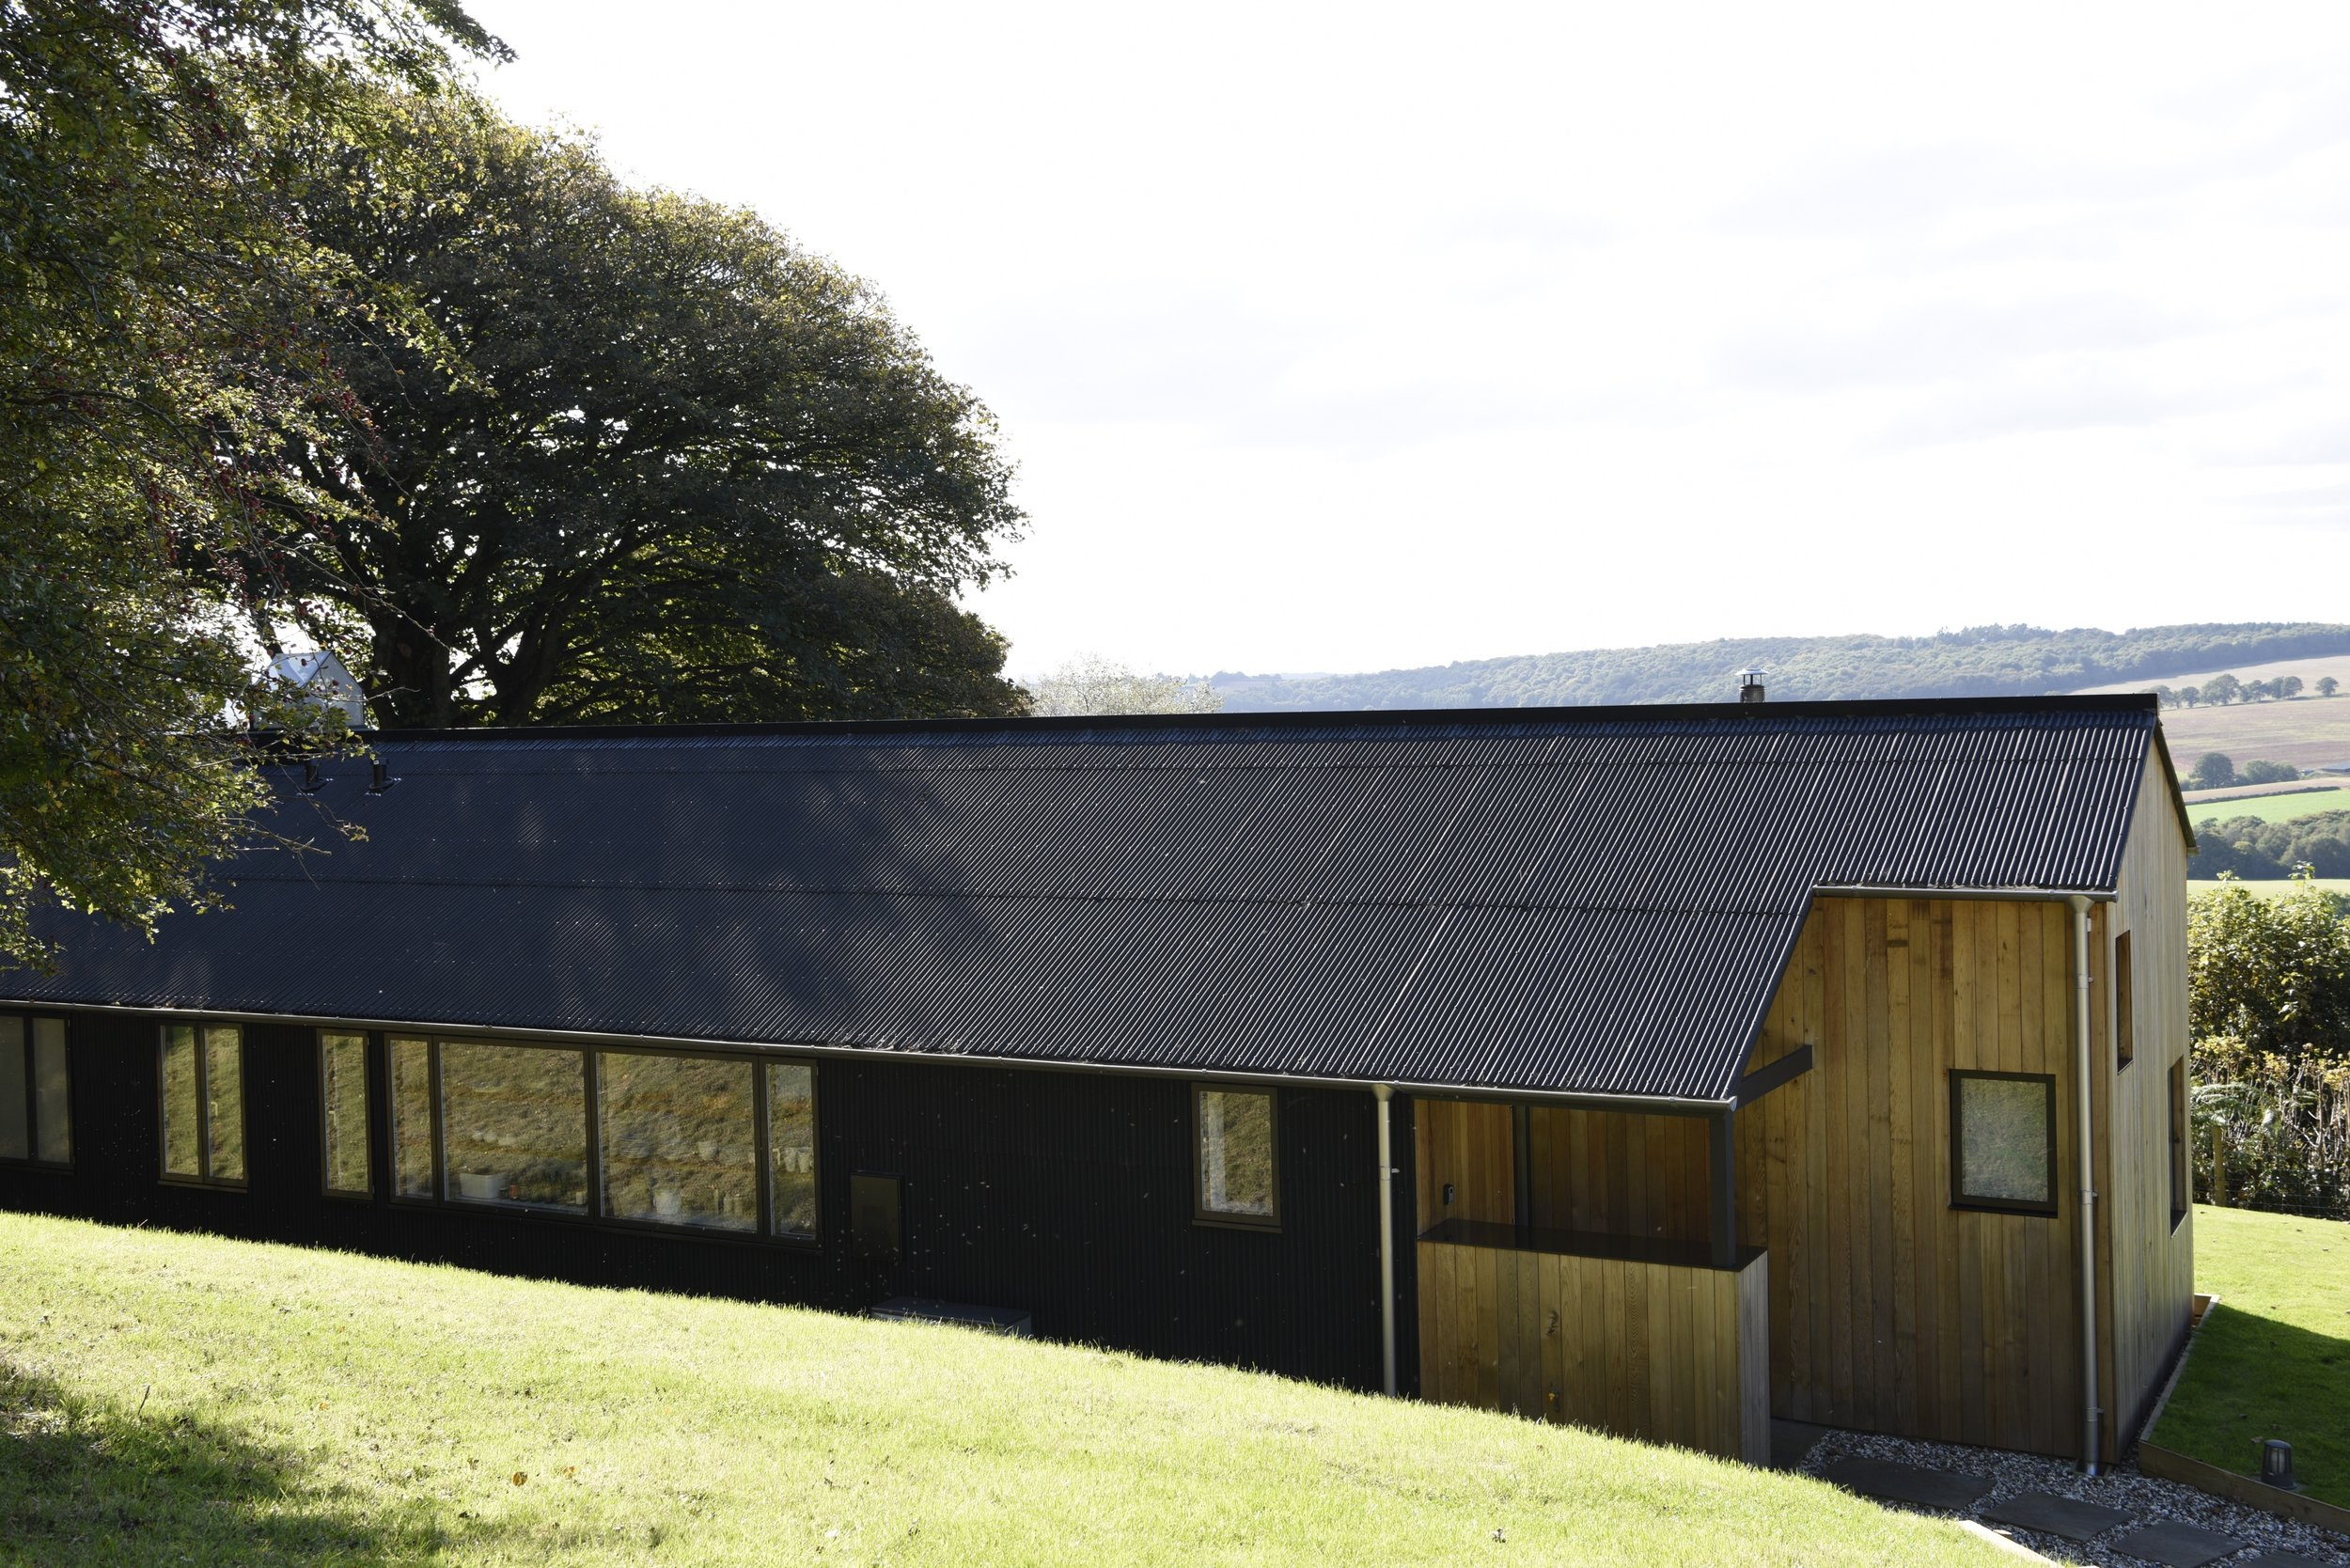 The Chickenshed aims to combine great architecture, clean design and wonderful views across the beautiful Monmouthshire countryside...